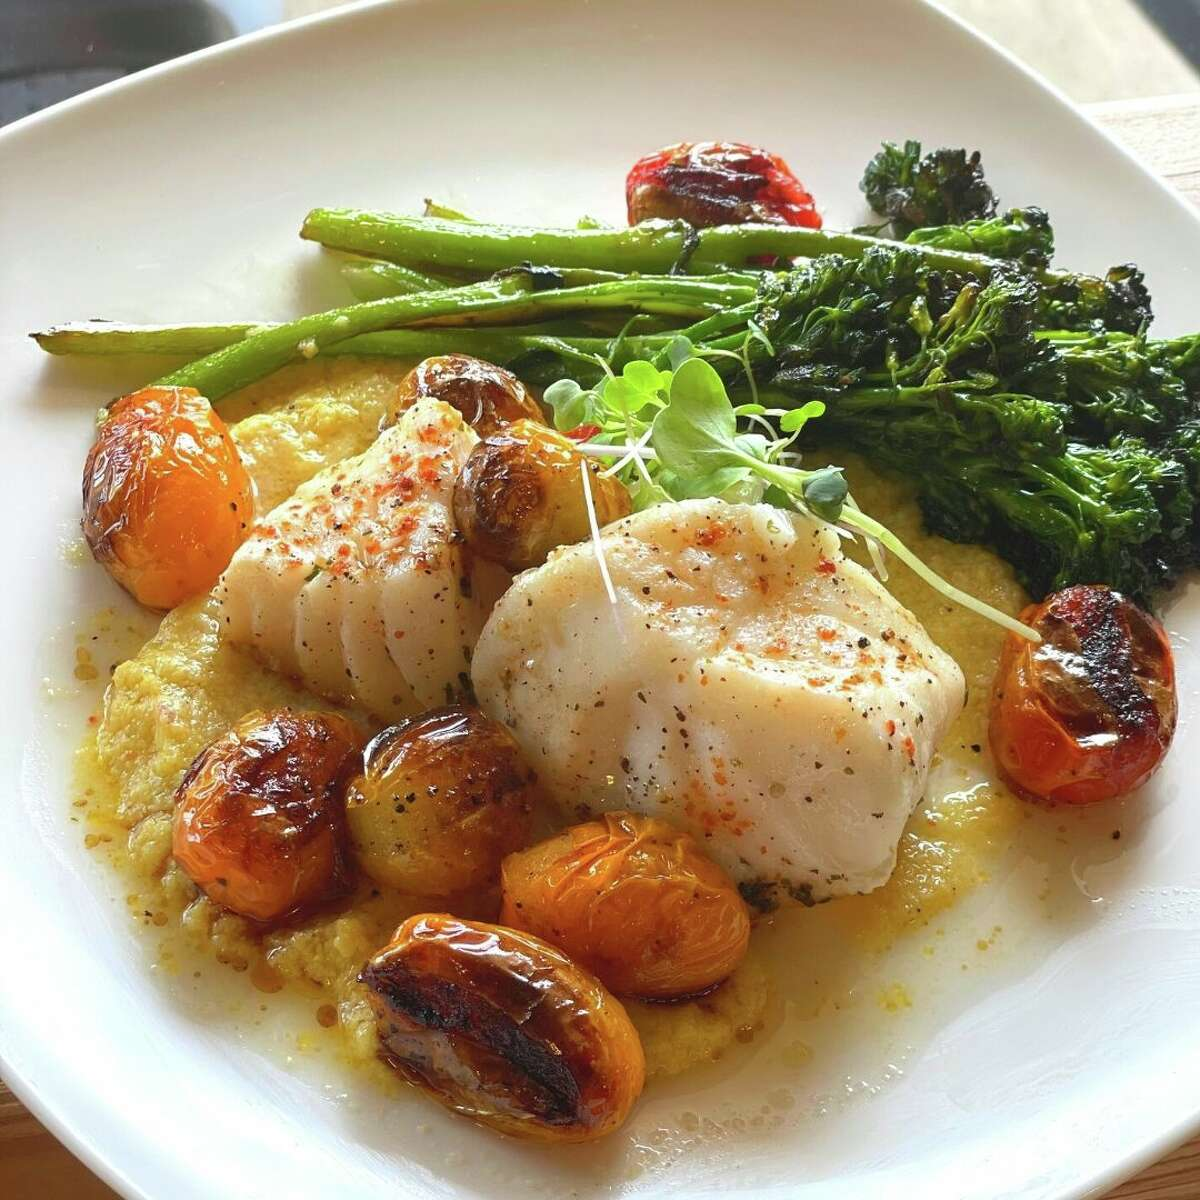 Cod with blistered tomatoes and grilled broccolini is among the dishes being developed for the relocated, expanded Hooked Market & Kitchen in Latham, due to open in mid-August 2021. (Provided photo.)